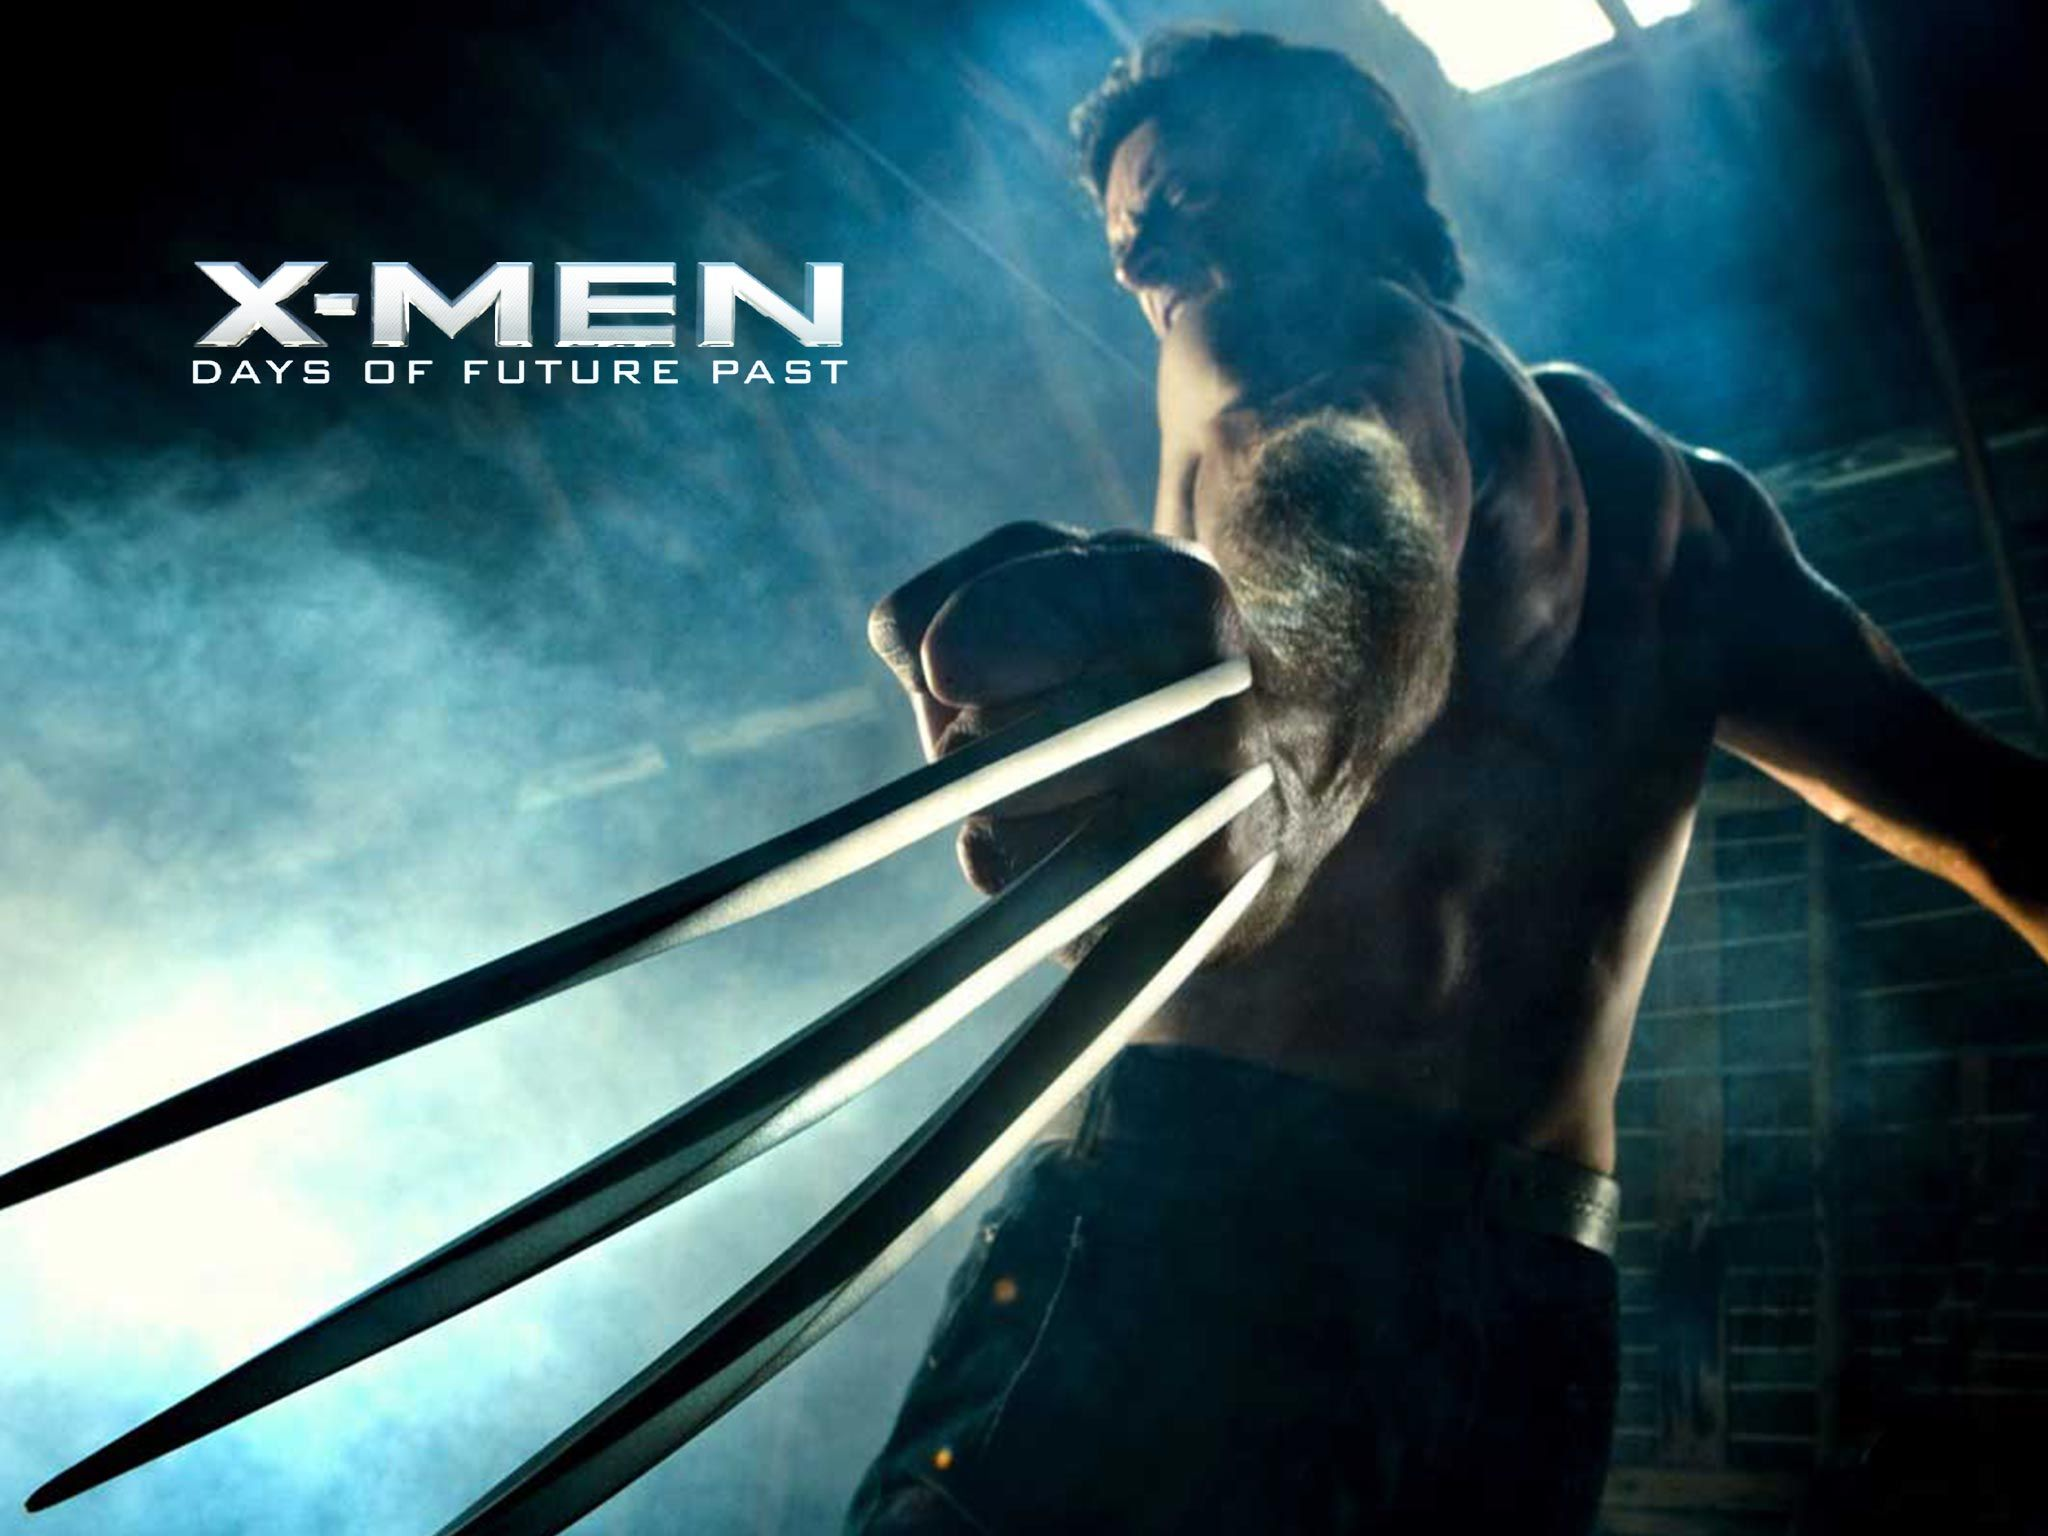 XMen Days Of Future Past HD Wallpapers Backgrounds 1024x768 X Men Movie Wallpaper 51